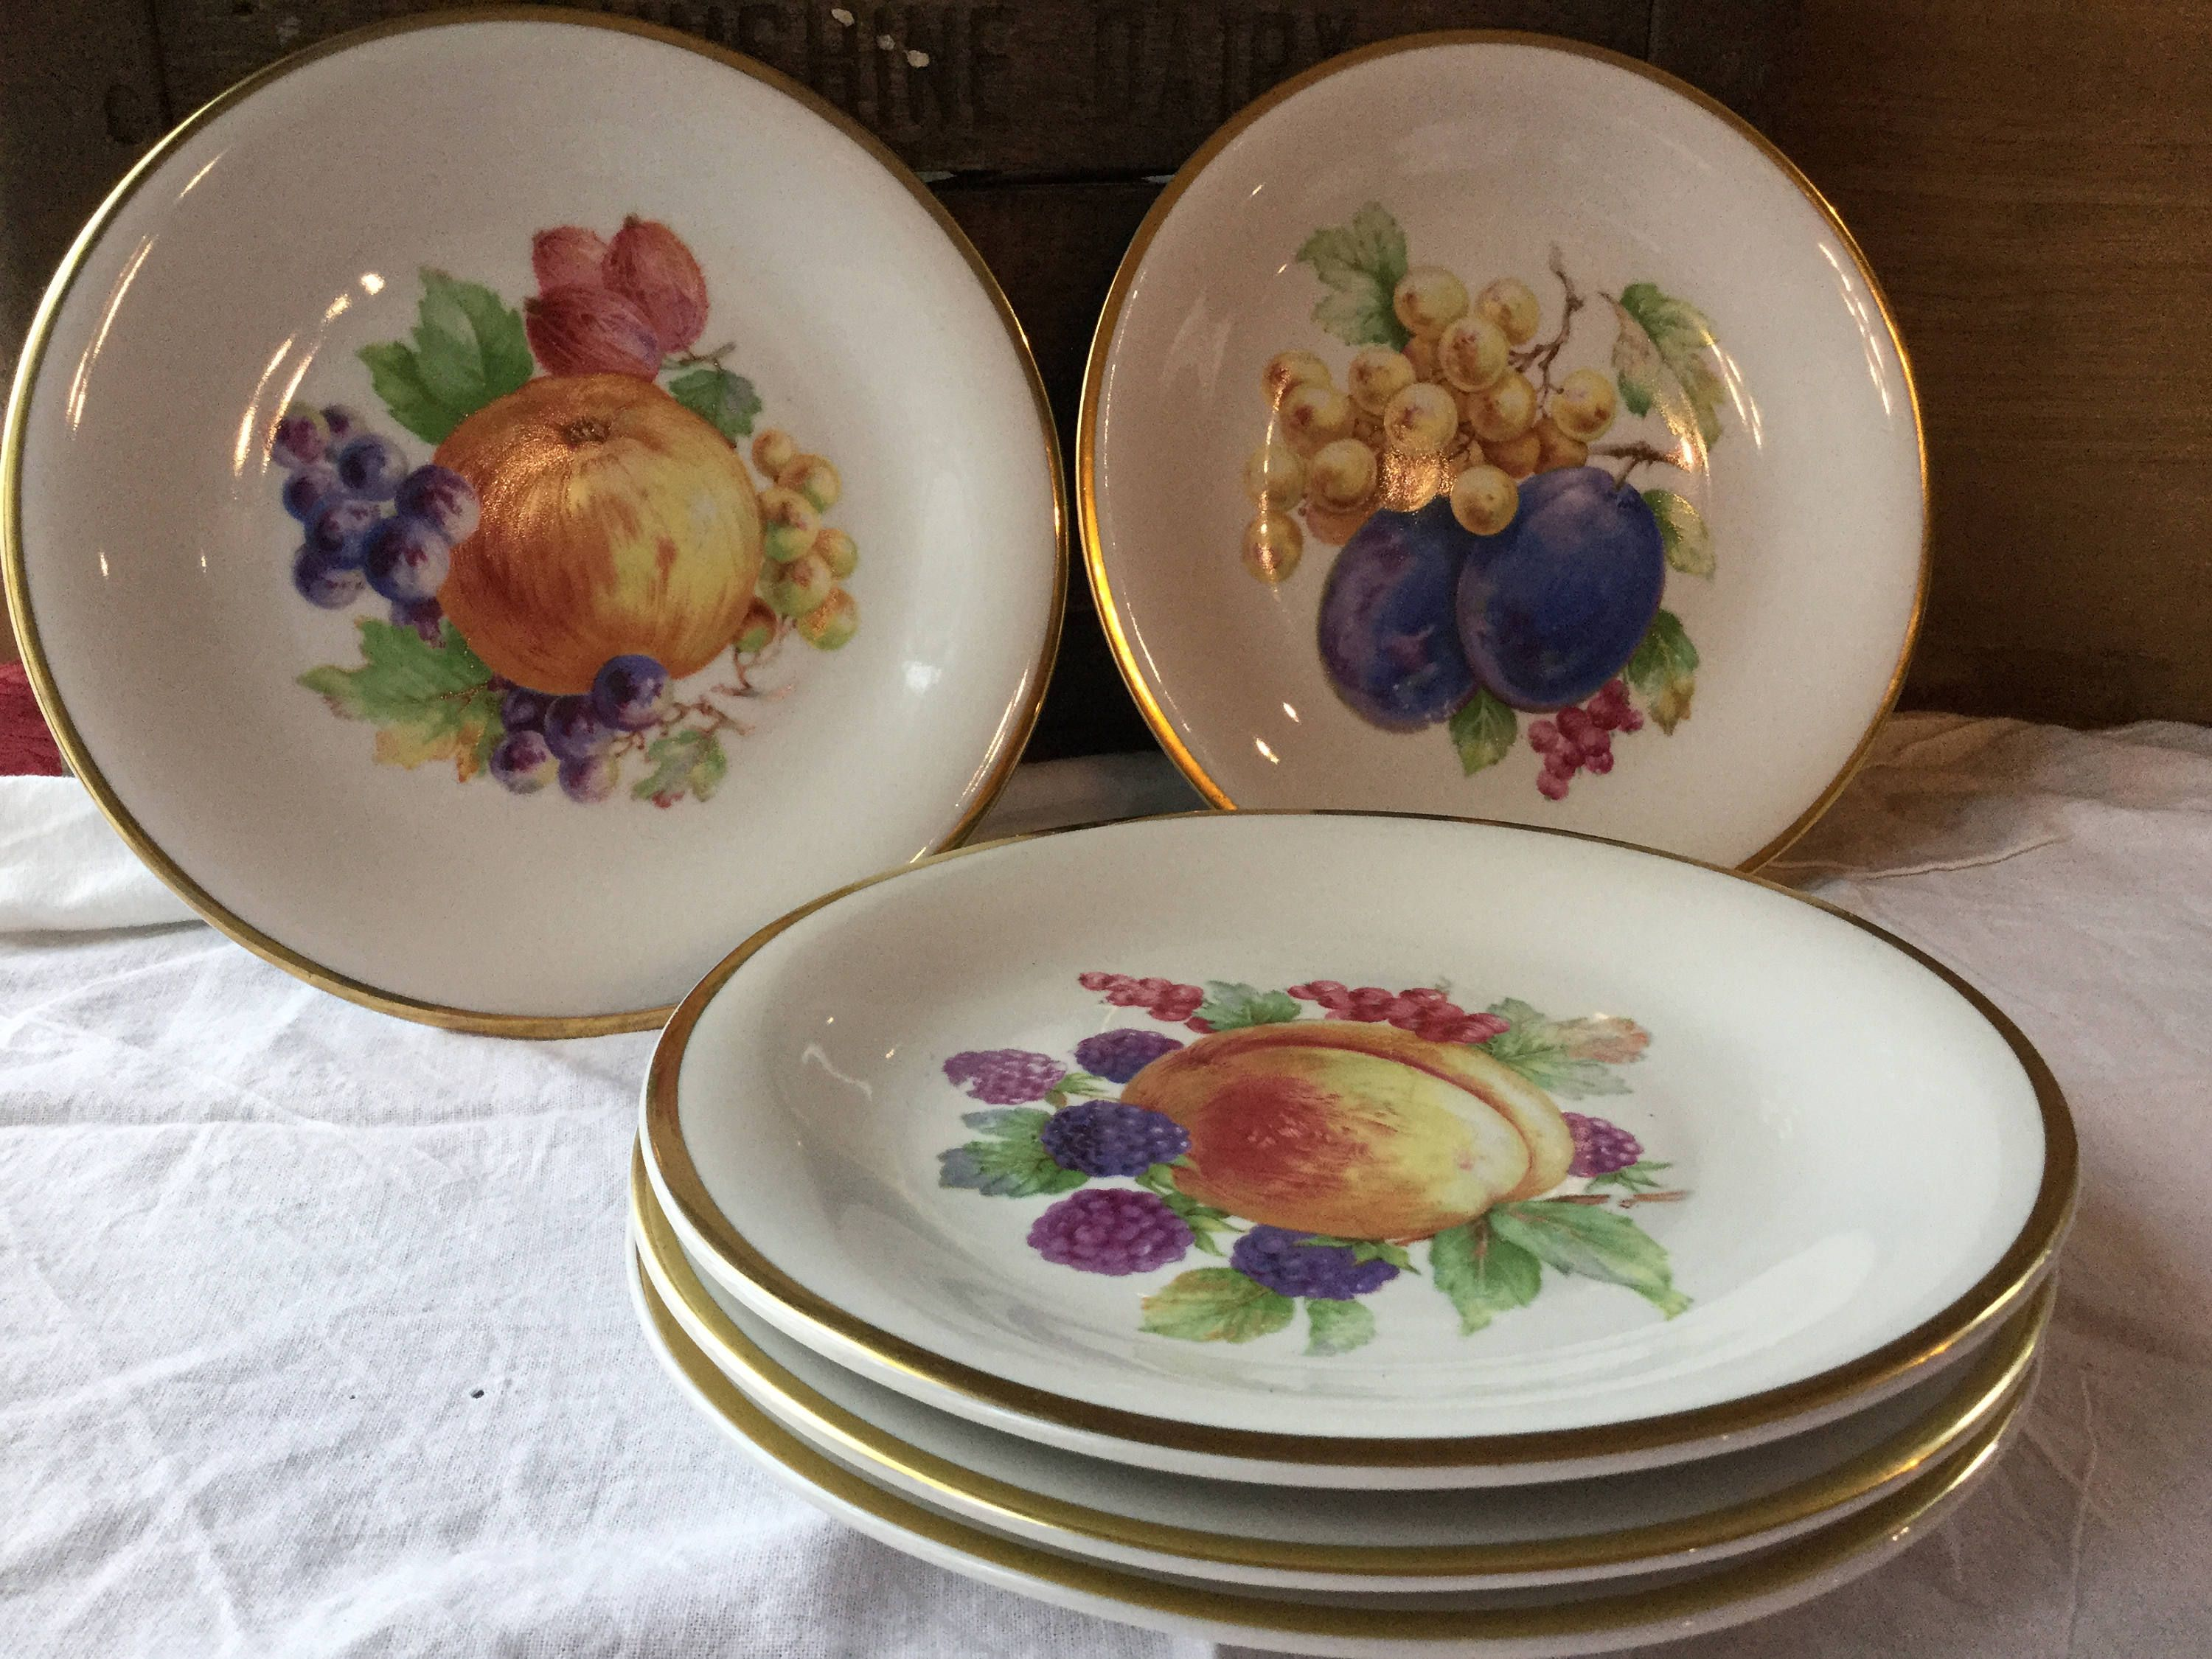 On Sale 1940/'s Schwarzenhammer Bavaria Fine Porcelain 7.50 inch Salad Plate with Purple Plum and Currants with Gold Rim Made in Germany